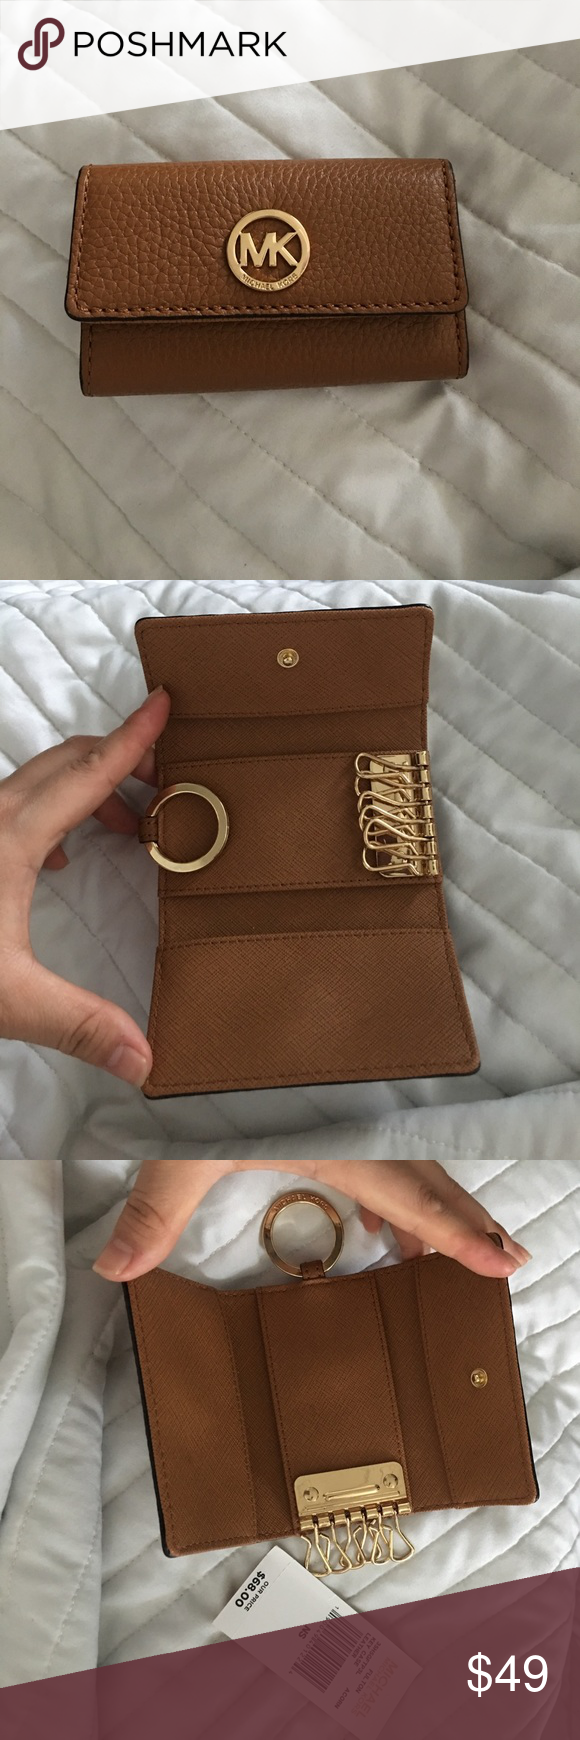 a1e082fe1cb00 Michael Kors Key Holder Gently used 6 ring key holder. No rips or tears  anywhere